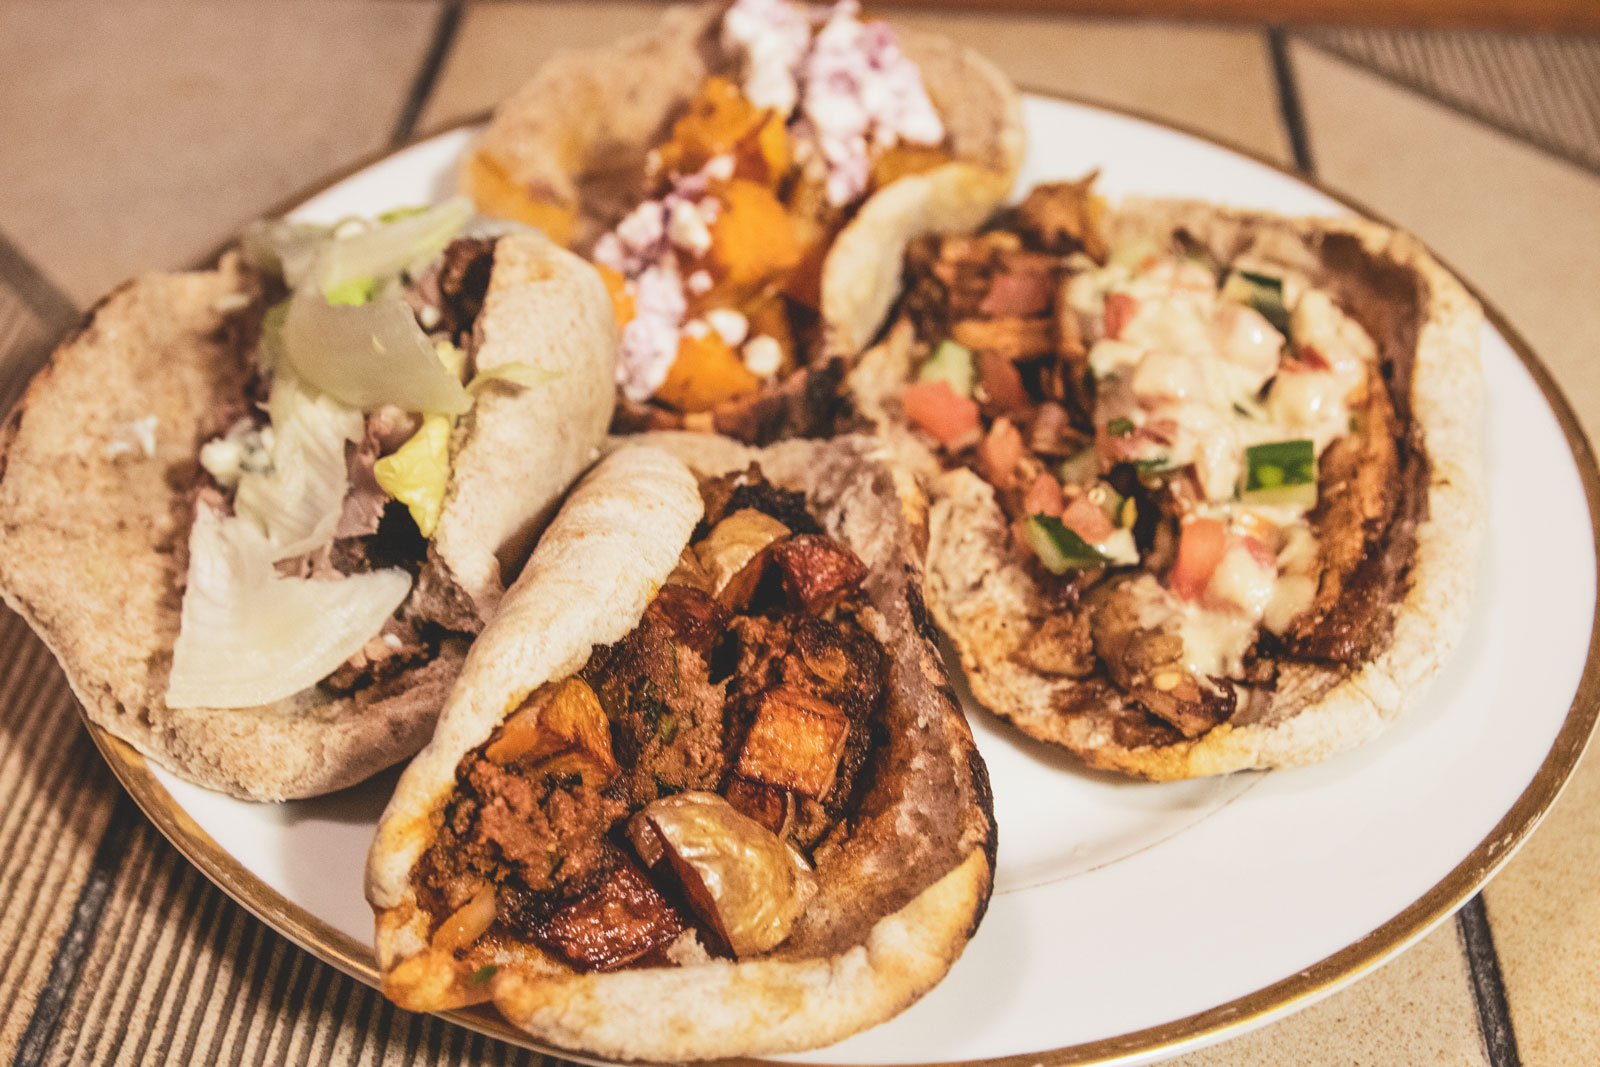 A plate filled up with a variety of different shwarma wraps.